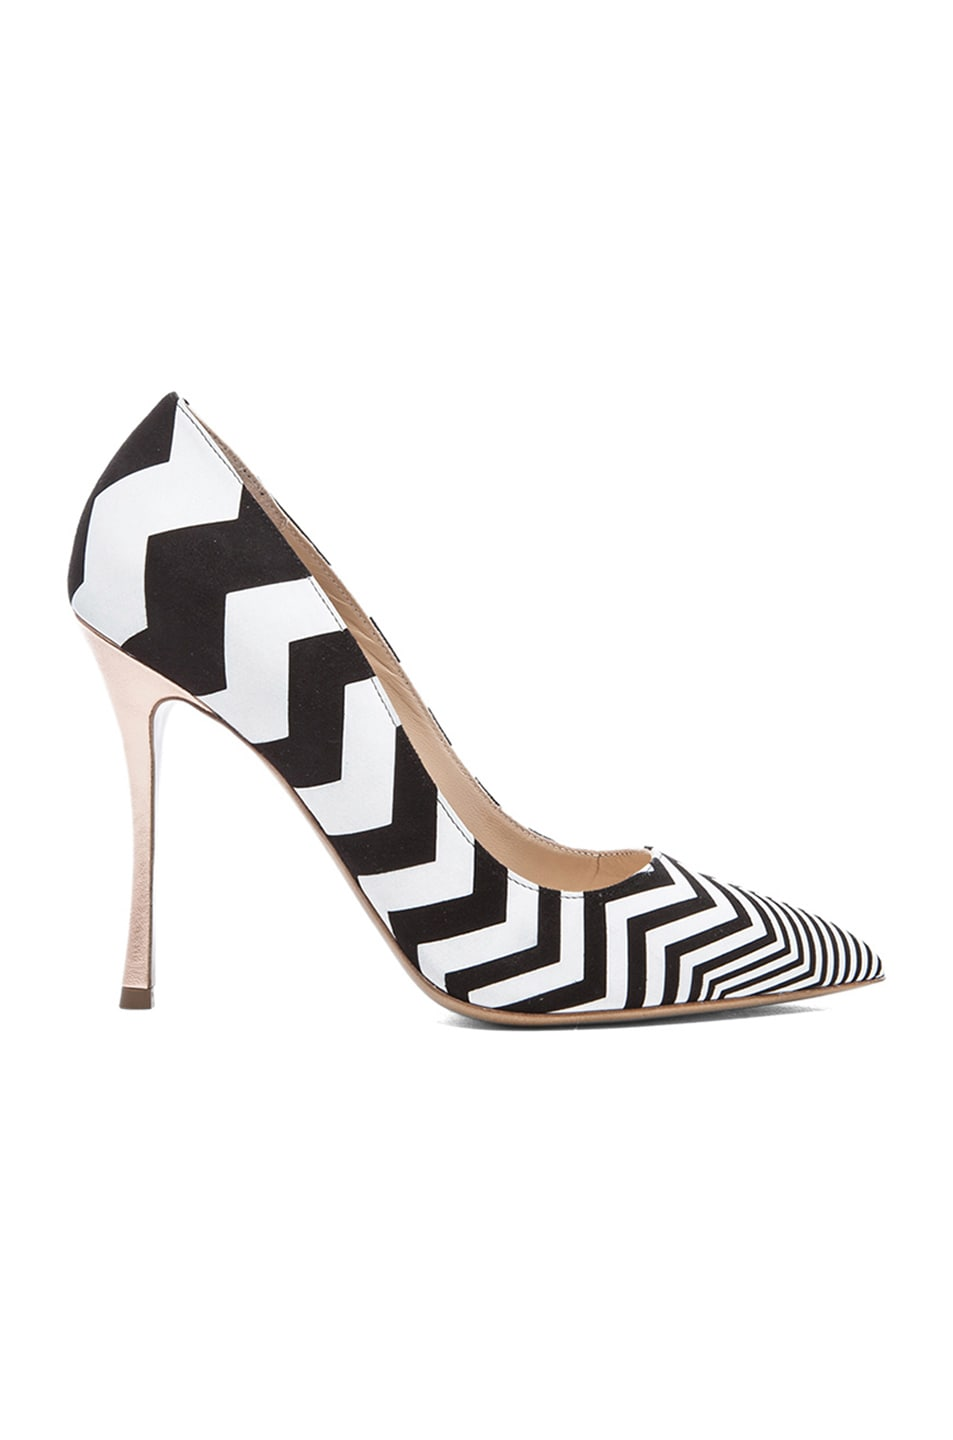 Image 1 of Nicholas Kirkwood Zig Zag Printed Suede Pumps in Black & White